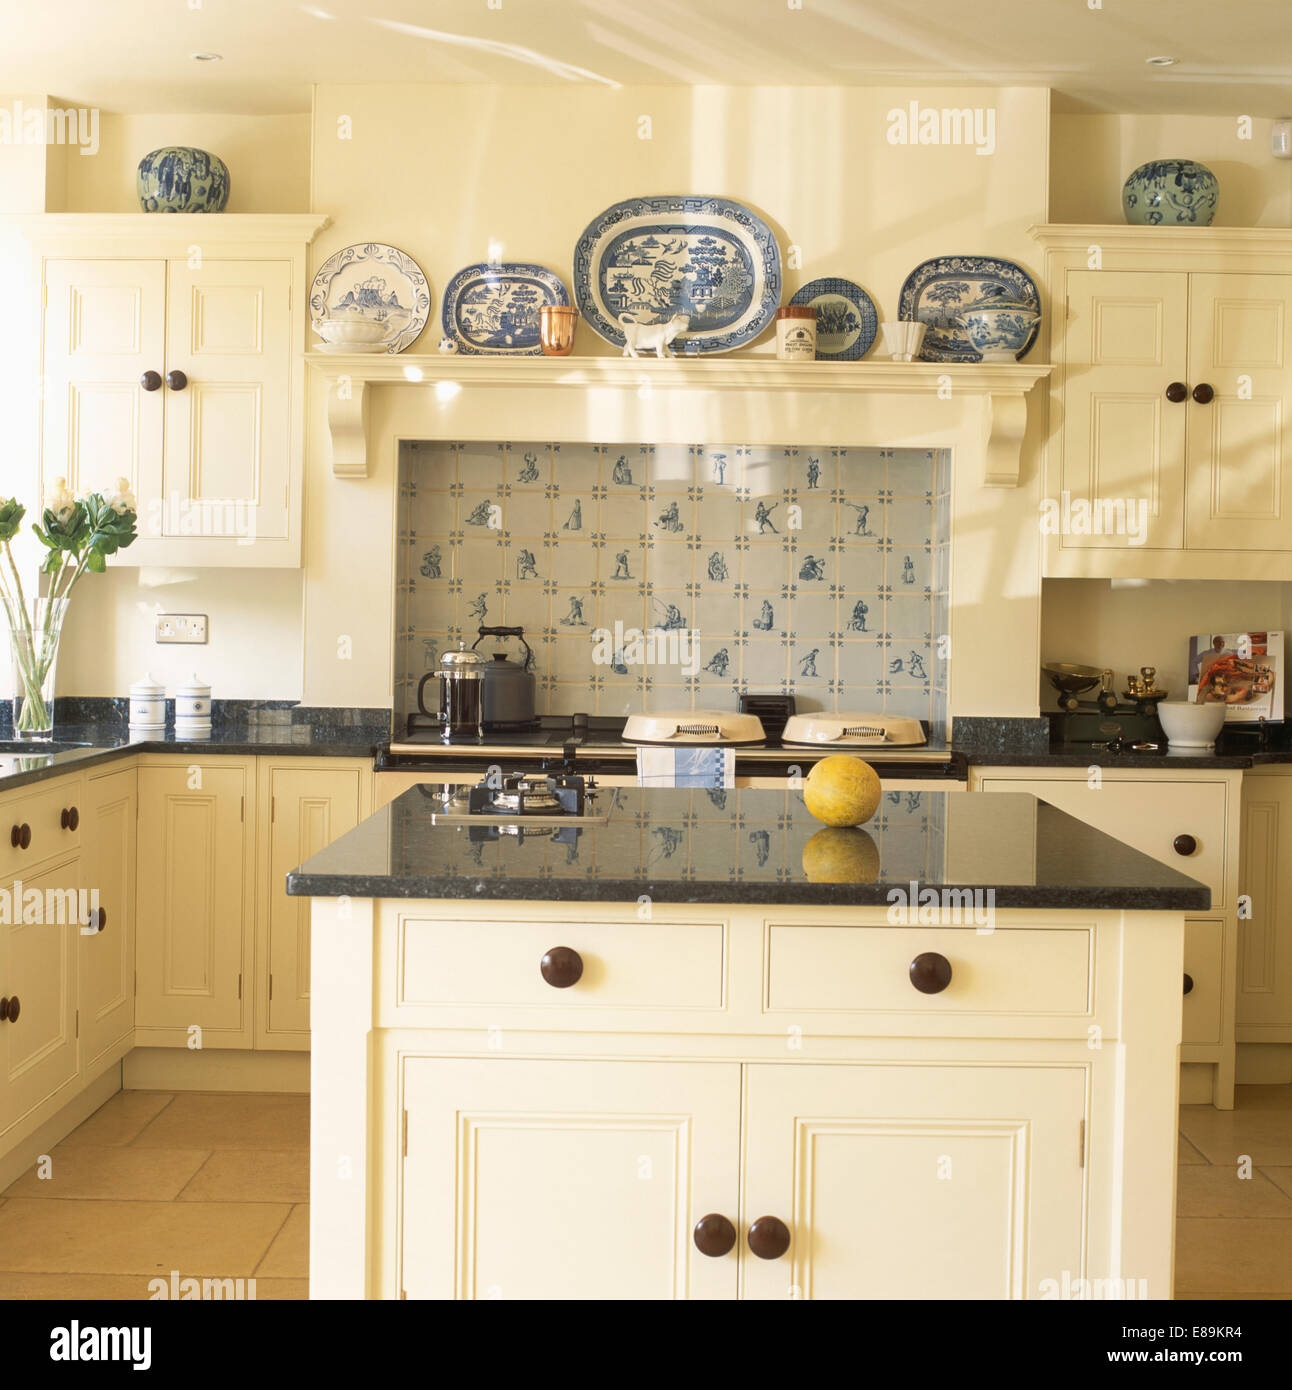 Granite Topped Island Unit In Cream Country Kitchen With Collection Blue White Plates On